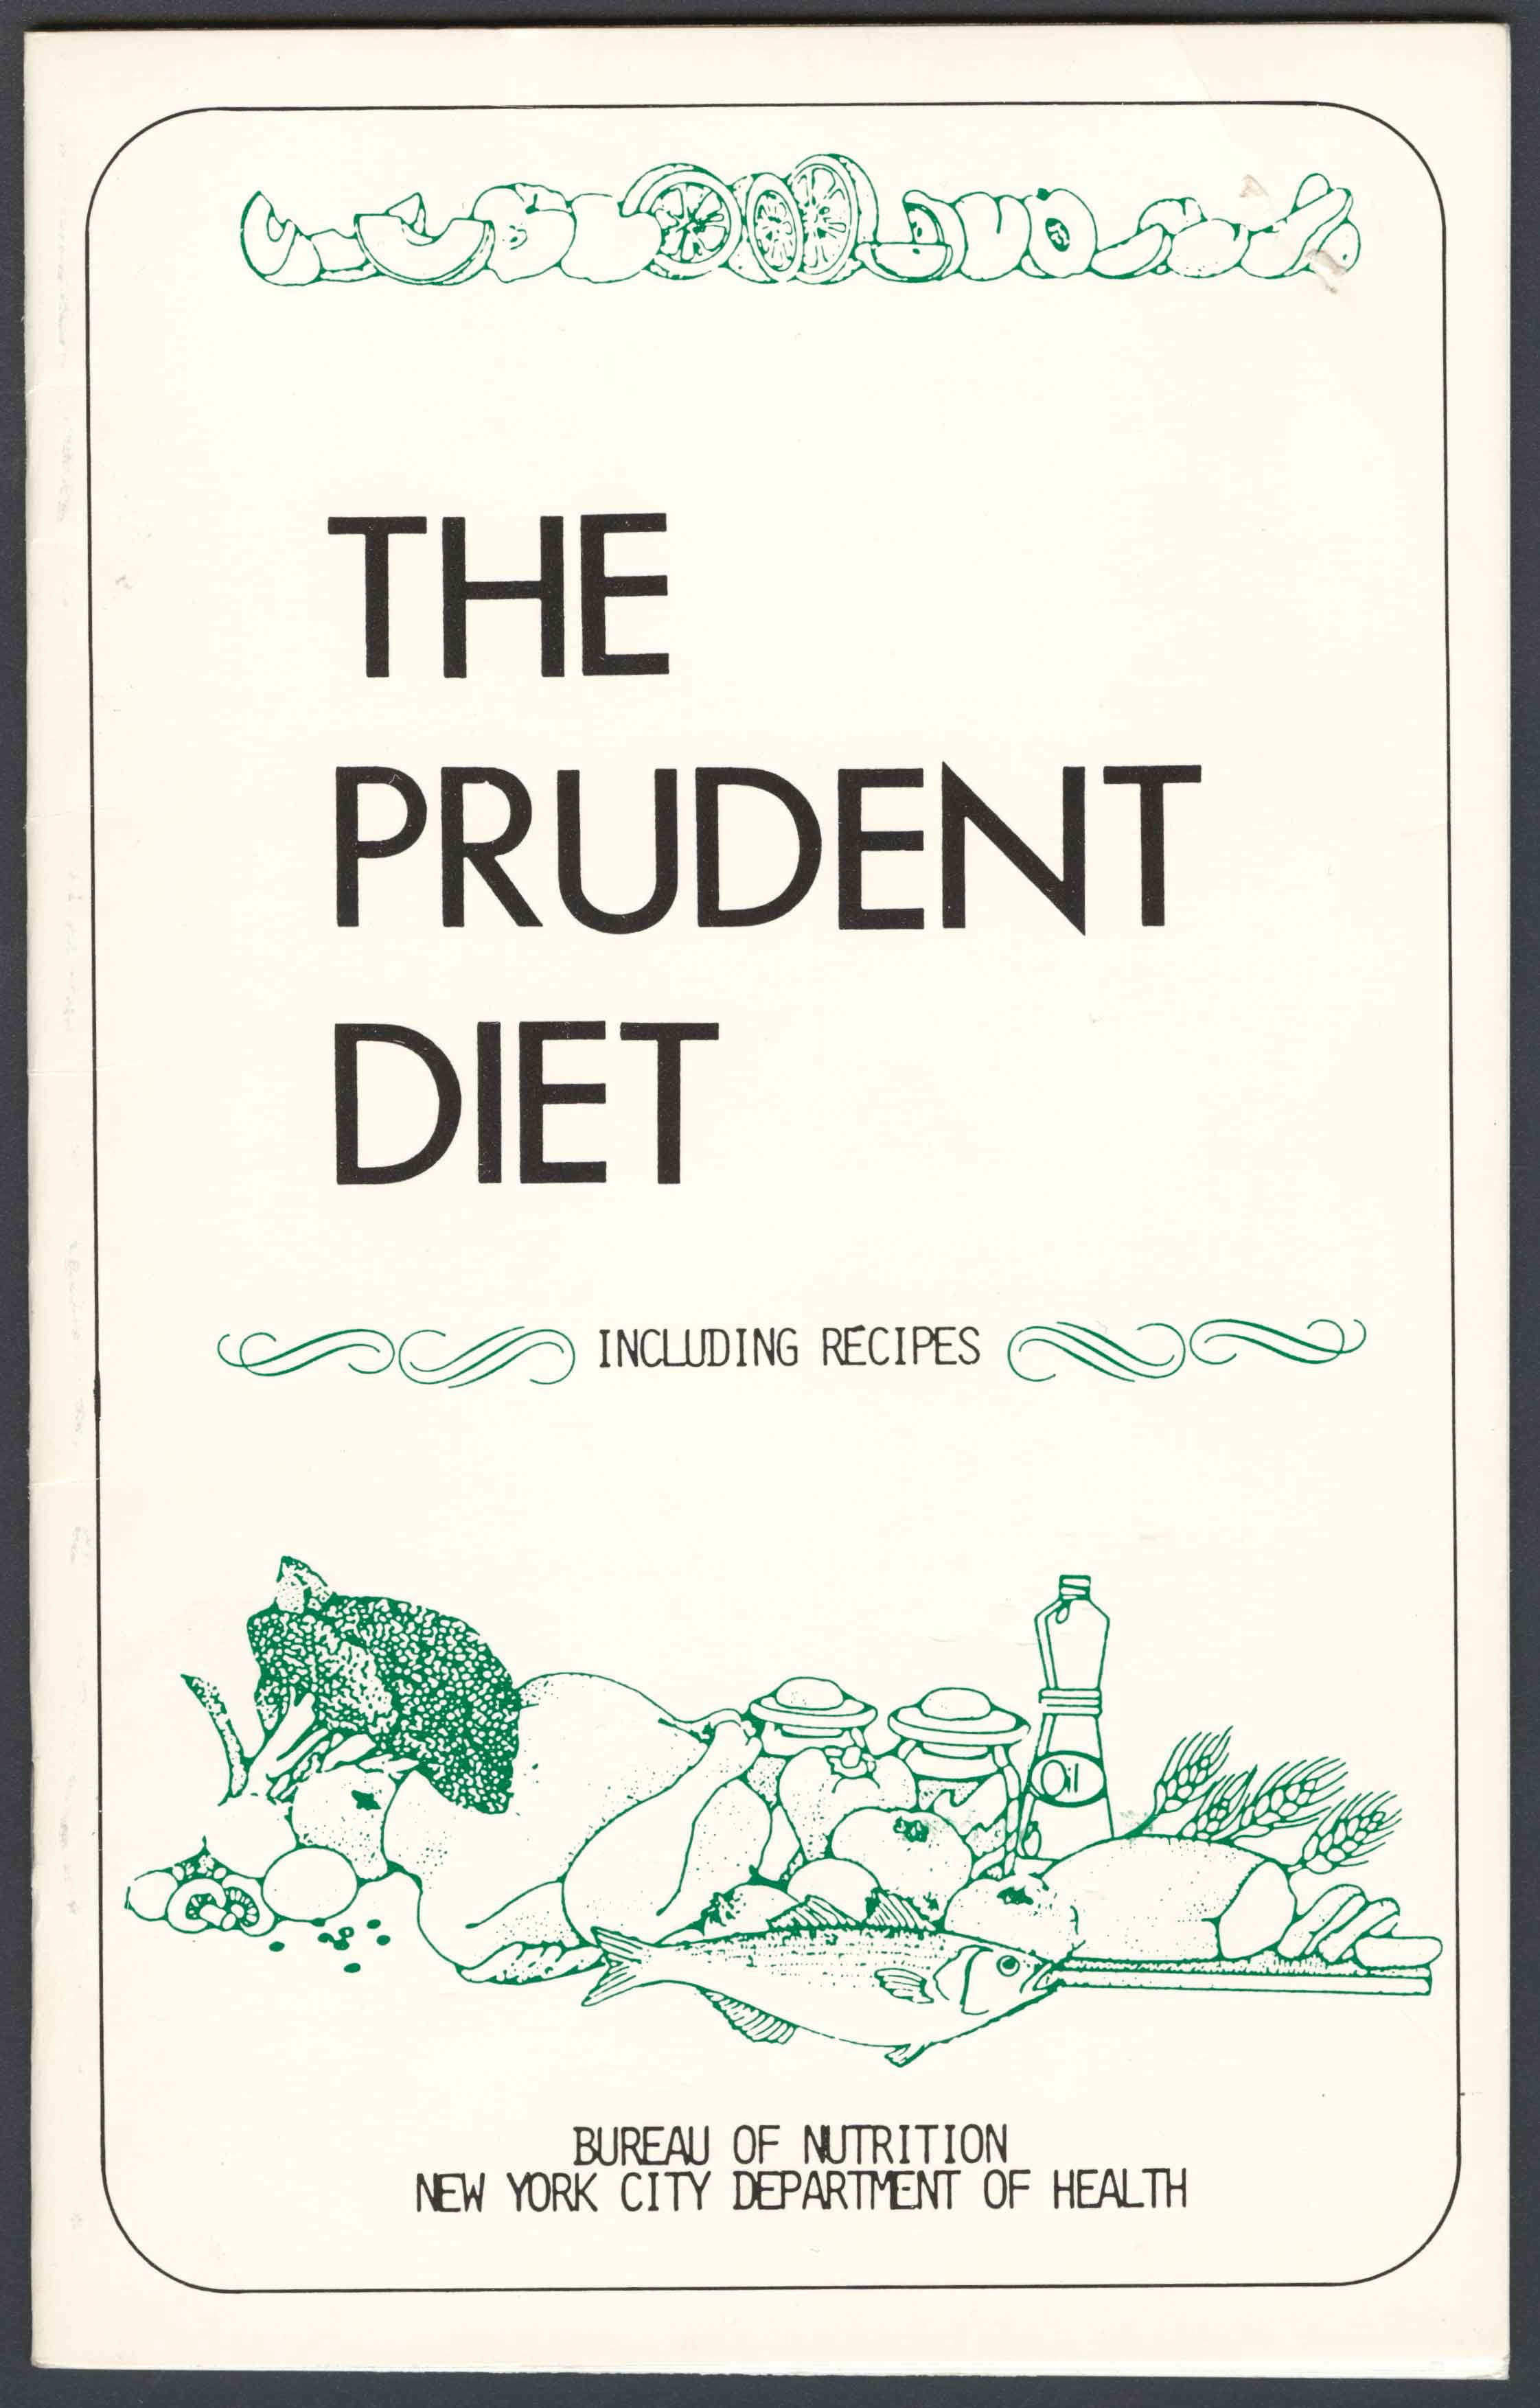 Cover of The Prudent Diet from Bureau of Nutrition, Department of Health